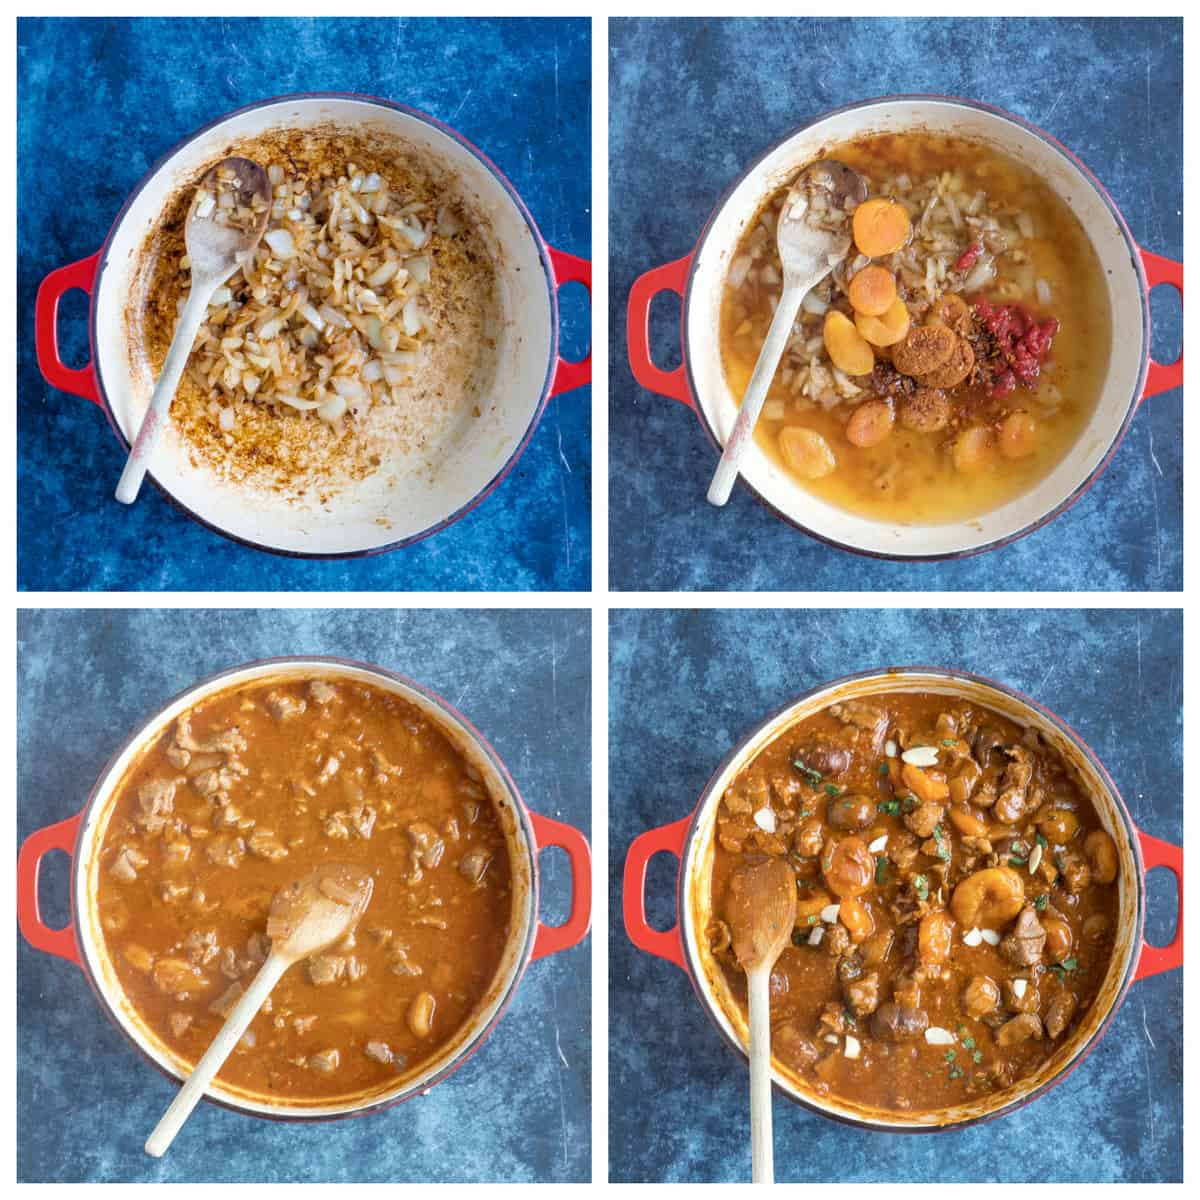 Step by step photo instructions for making lamb tagine with apricots.